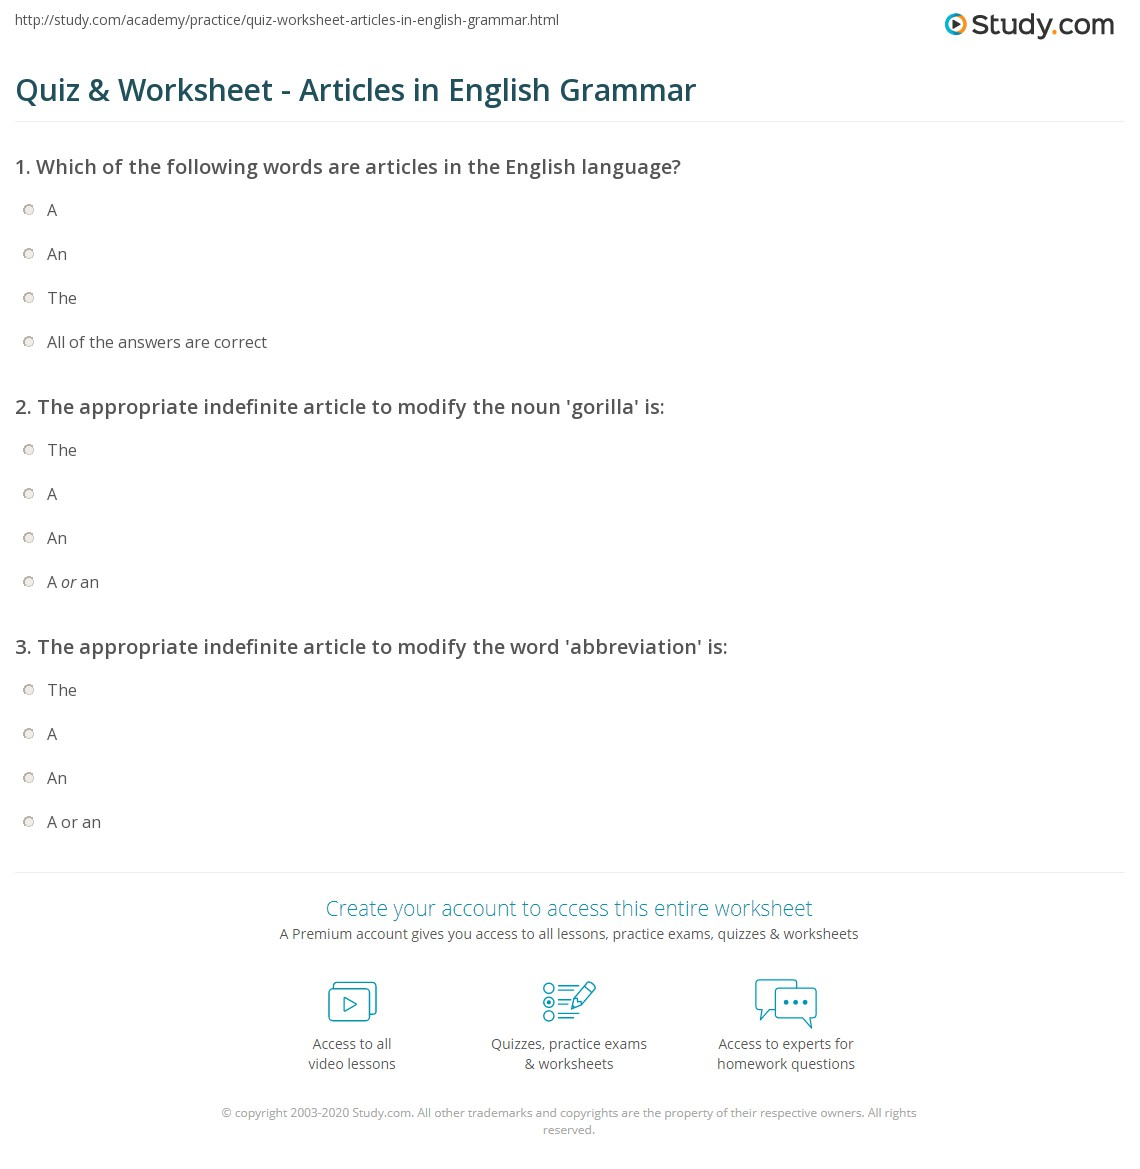 worksheet English Grammar For Adults Worksheets quiz worksheet articles in english grammar study com print what are definition use examples worksheet